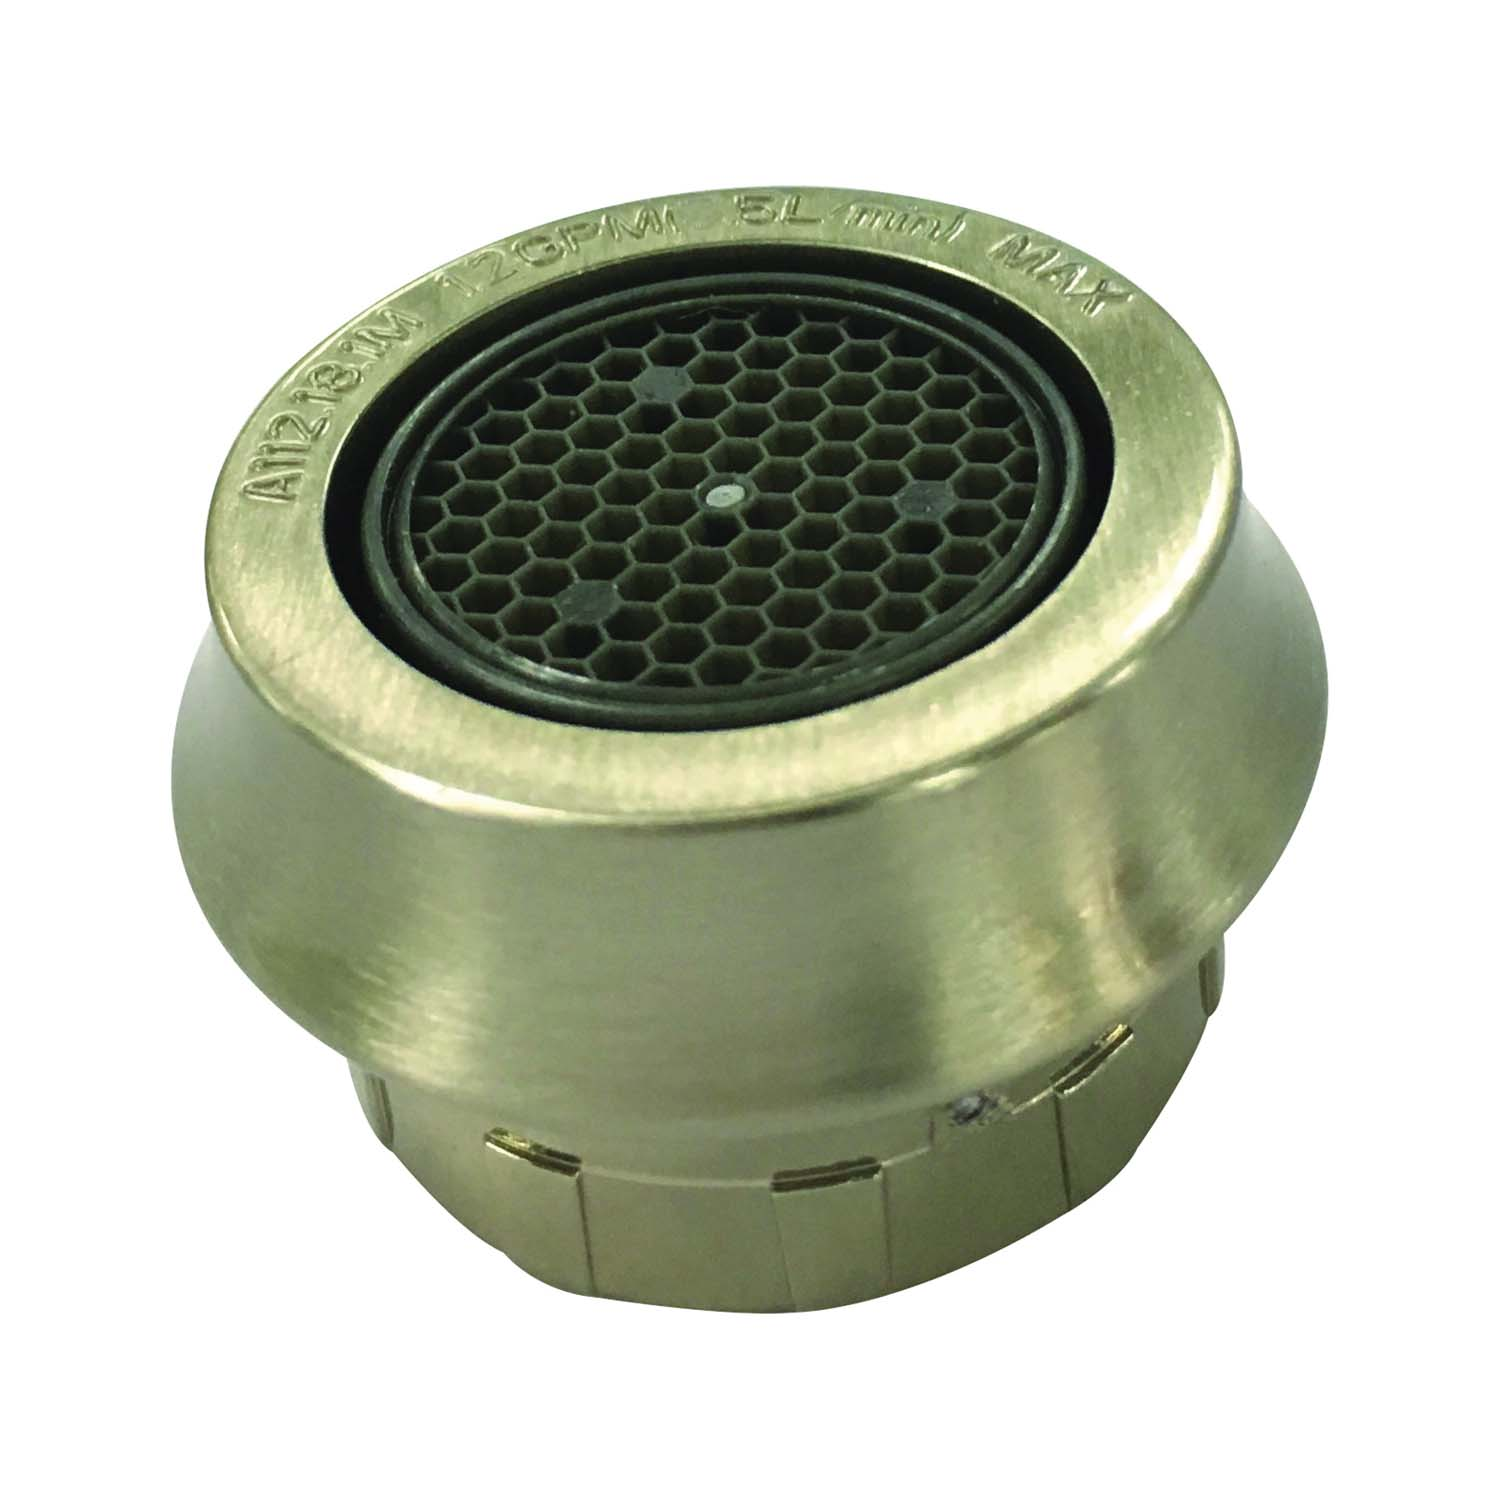 Picture of Boston Harbor A500157NNP-51 Faucet Aerator, 55/64-27, Female, Brushed Nickel, 1.2 gpm